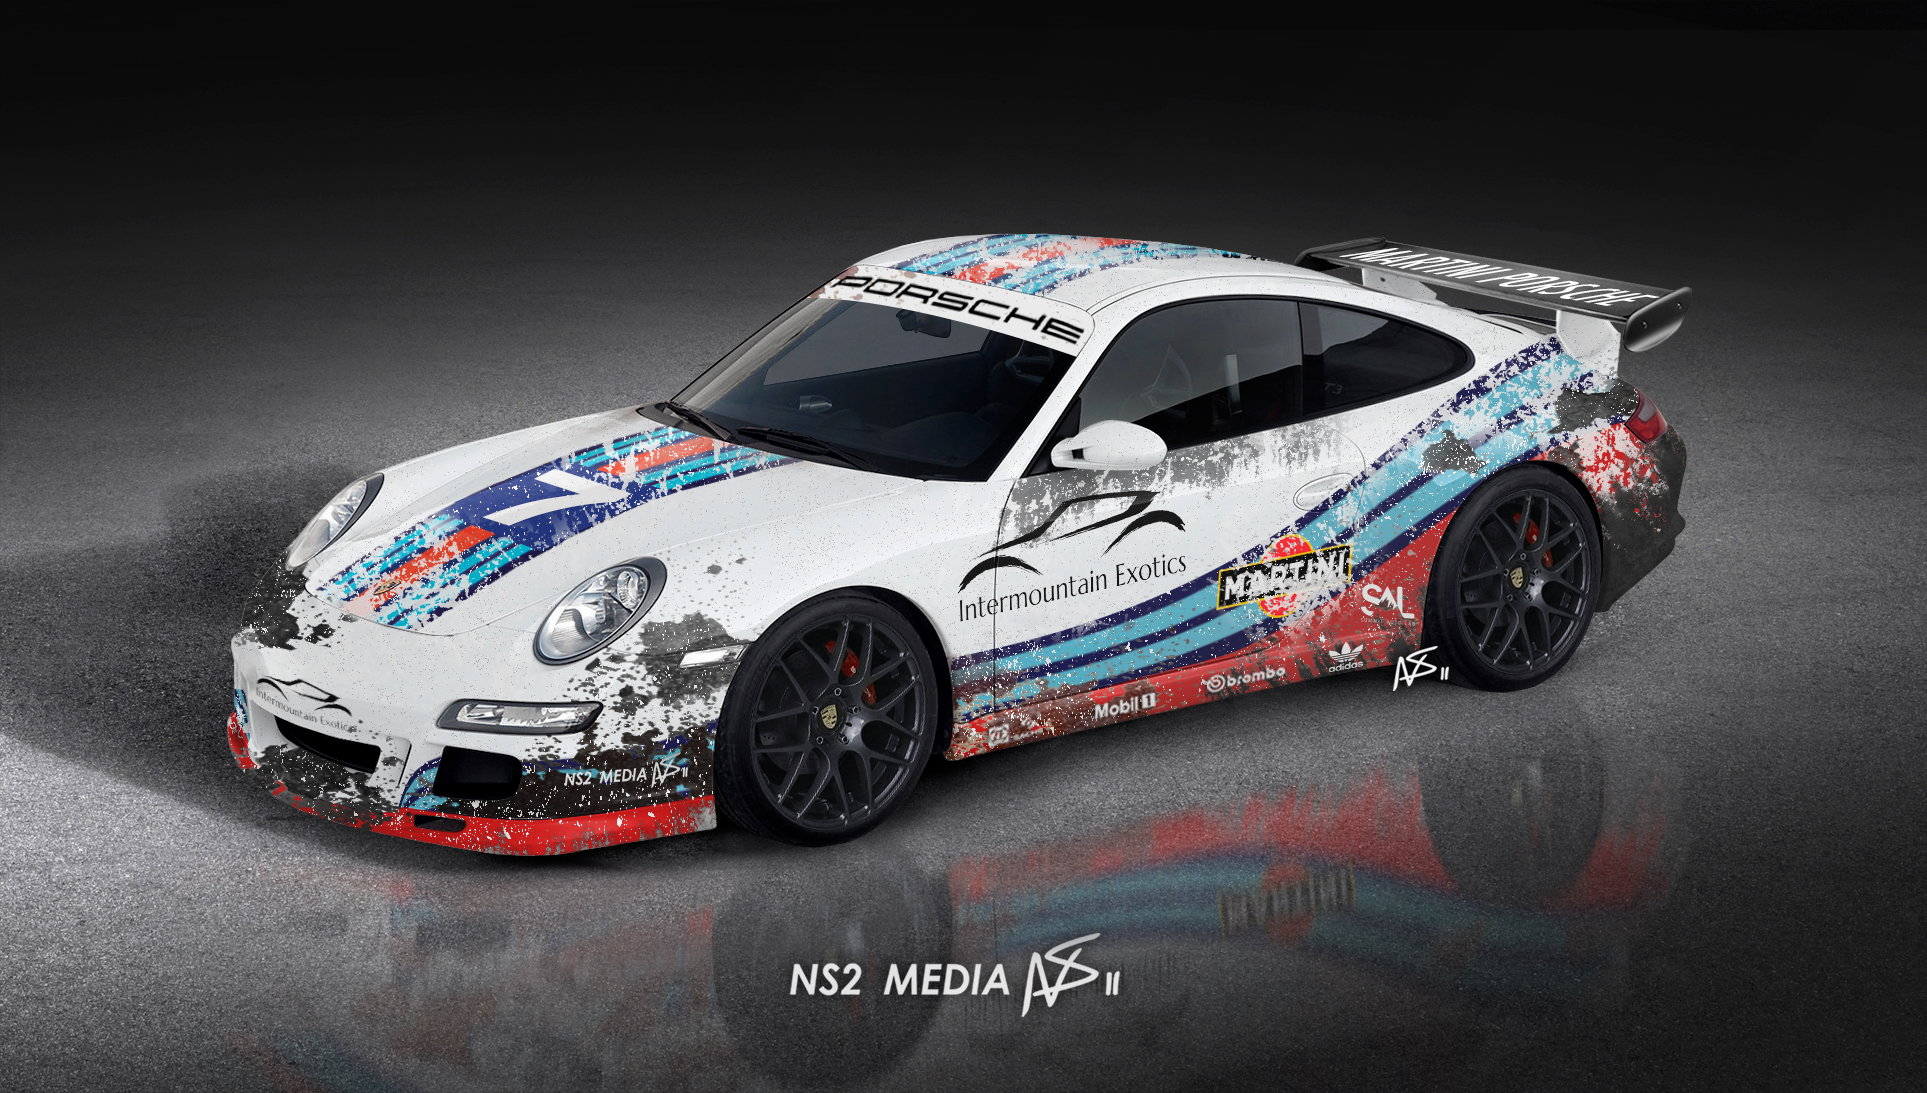 Check this out before wrapping or speccing your next Porsche